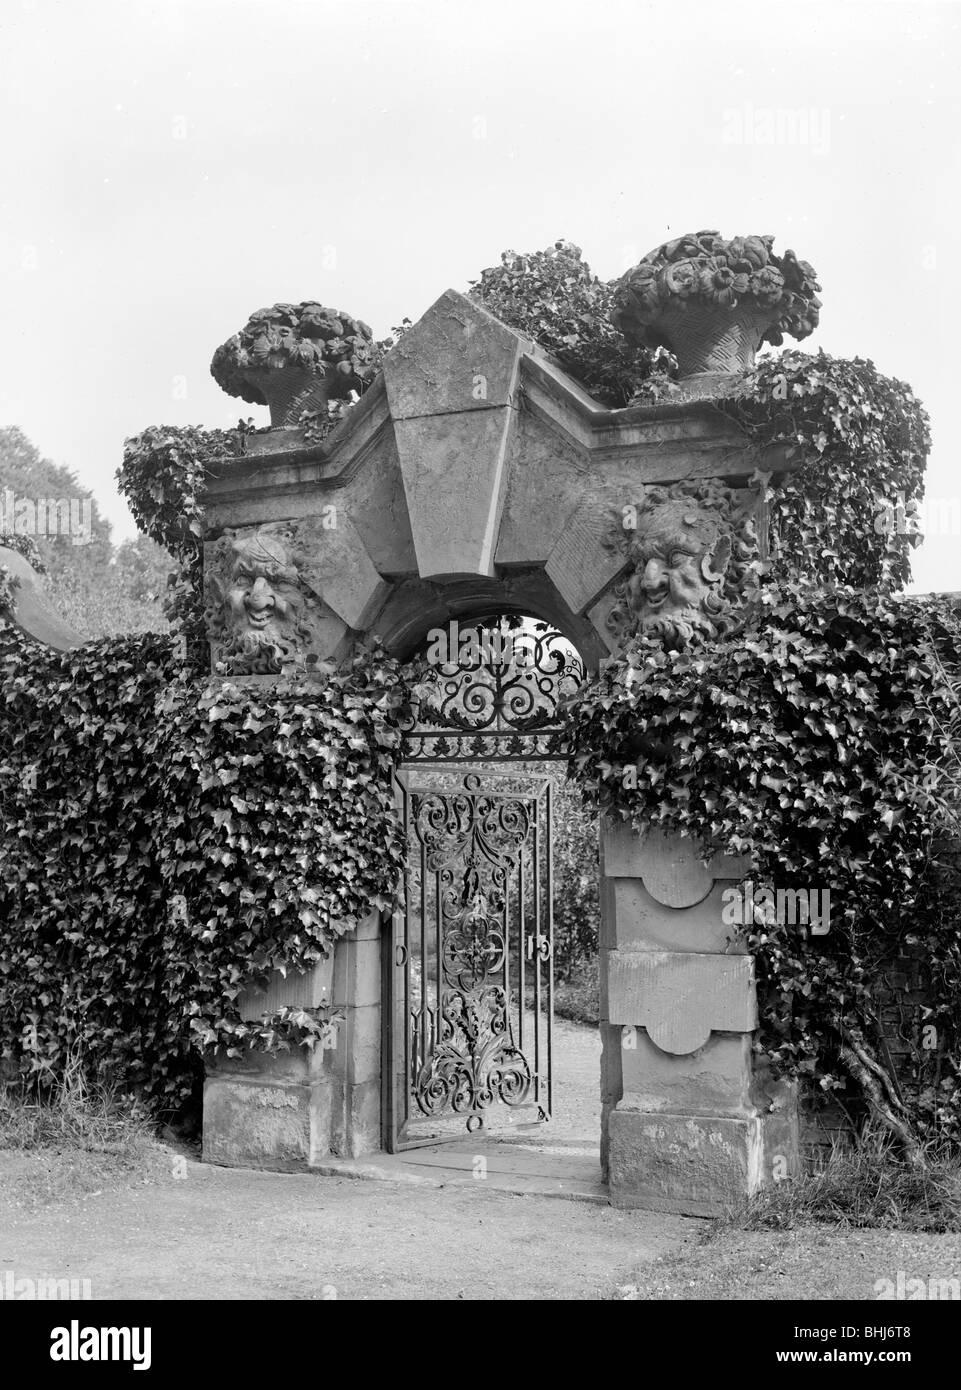 The Satyr Gate, Castle Howard, North Yorkshire. - Stock Image